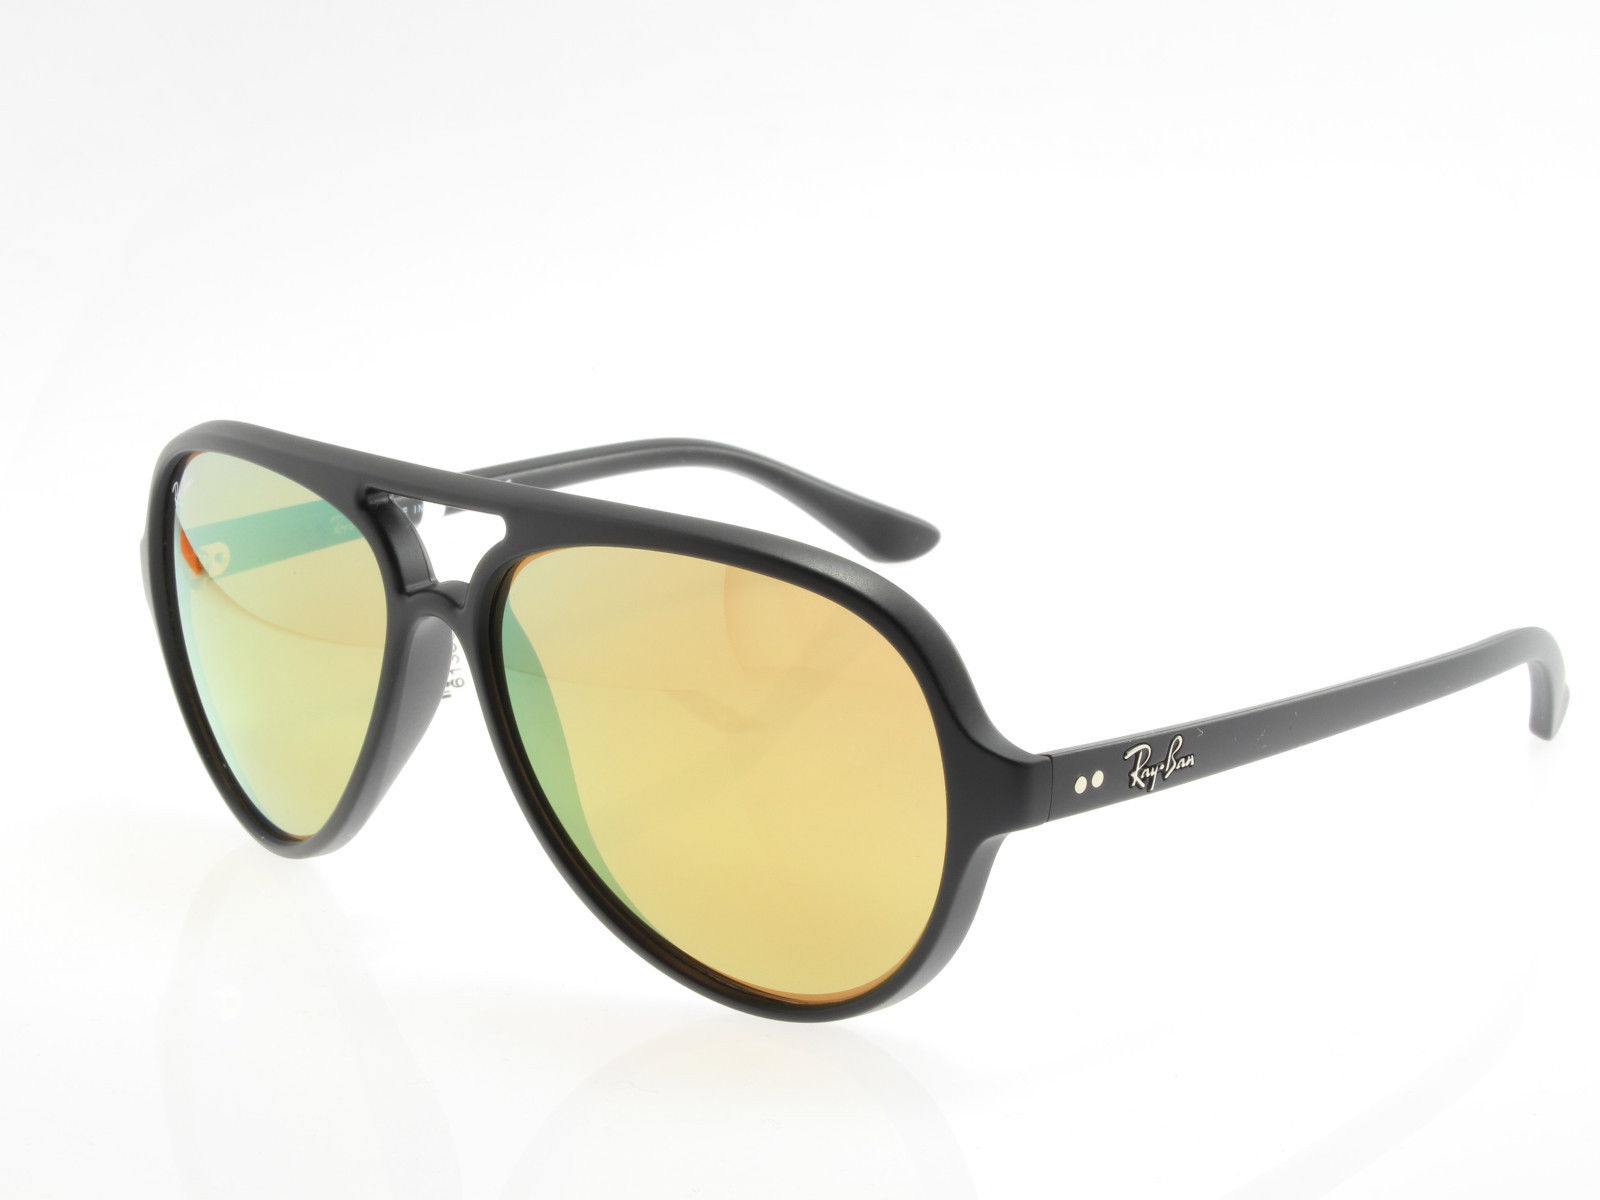 9b11c483a9d9a ... uk new original sunglasses ray ban rb 4125 601 s 93 cats 5000 black  gold mirror